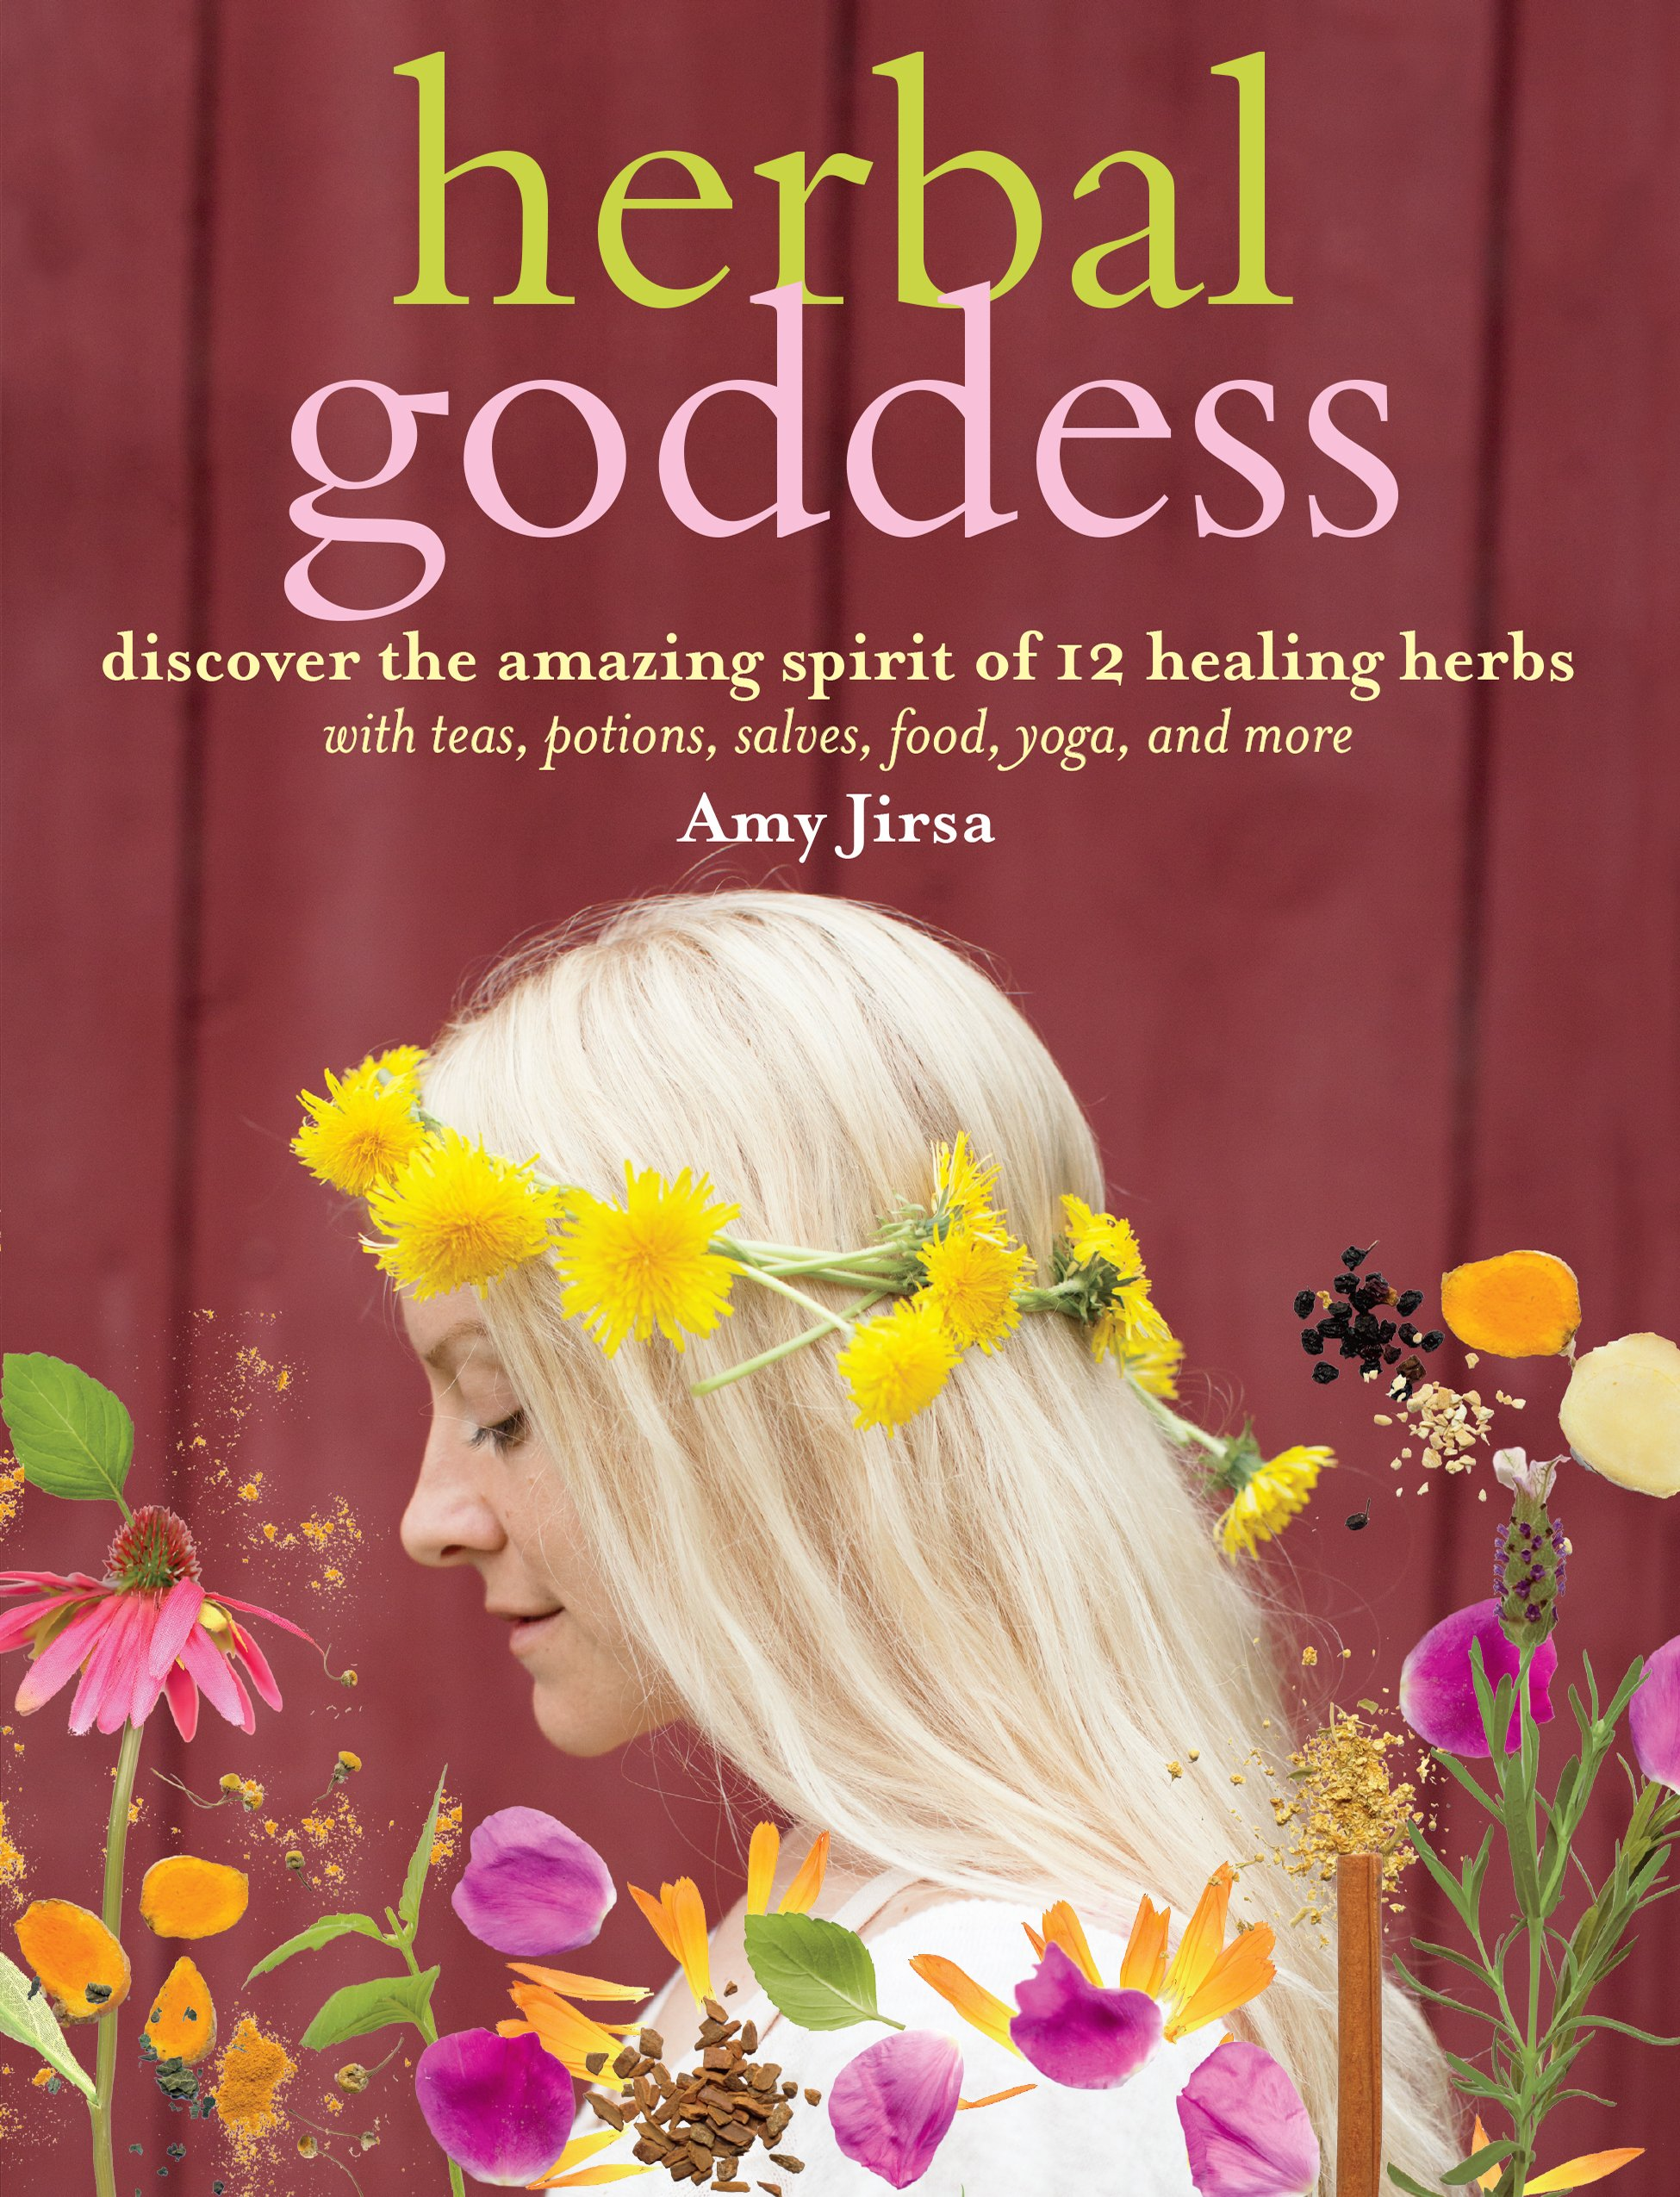 Download Herbal Goddess: Discover the Amazing Spirit of 12 Healing Herbs with Teas, Potions, Salves, Food, Yoga, and More ebook